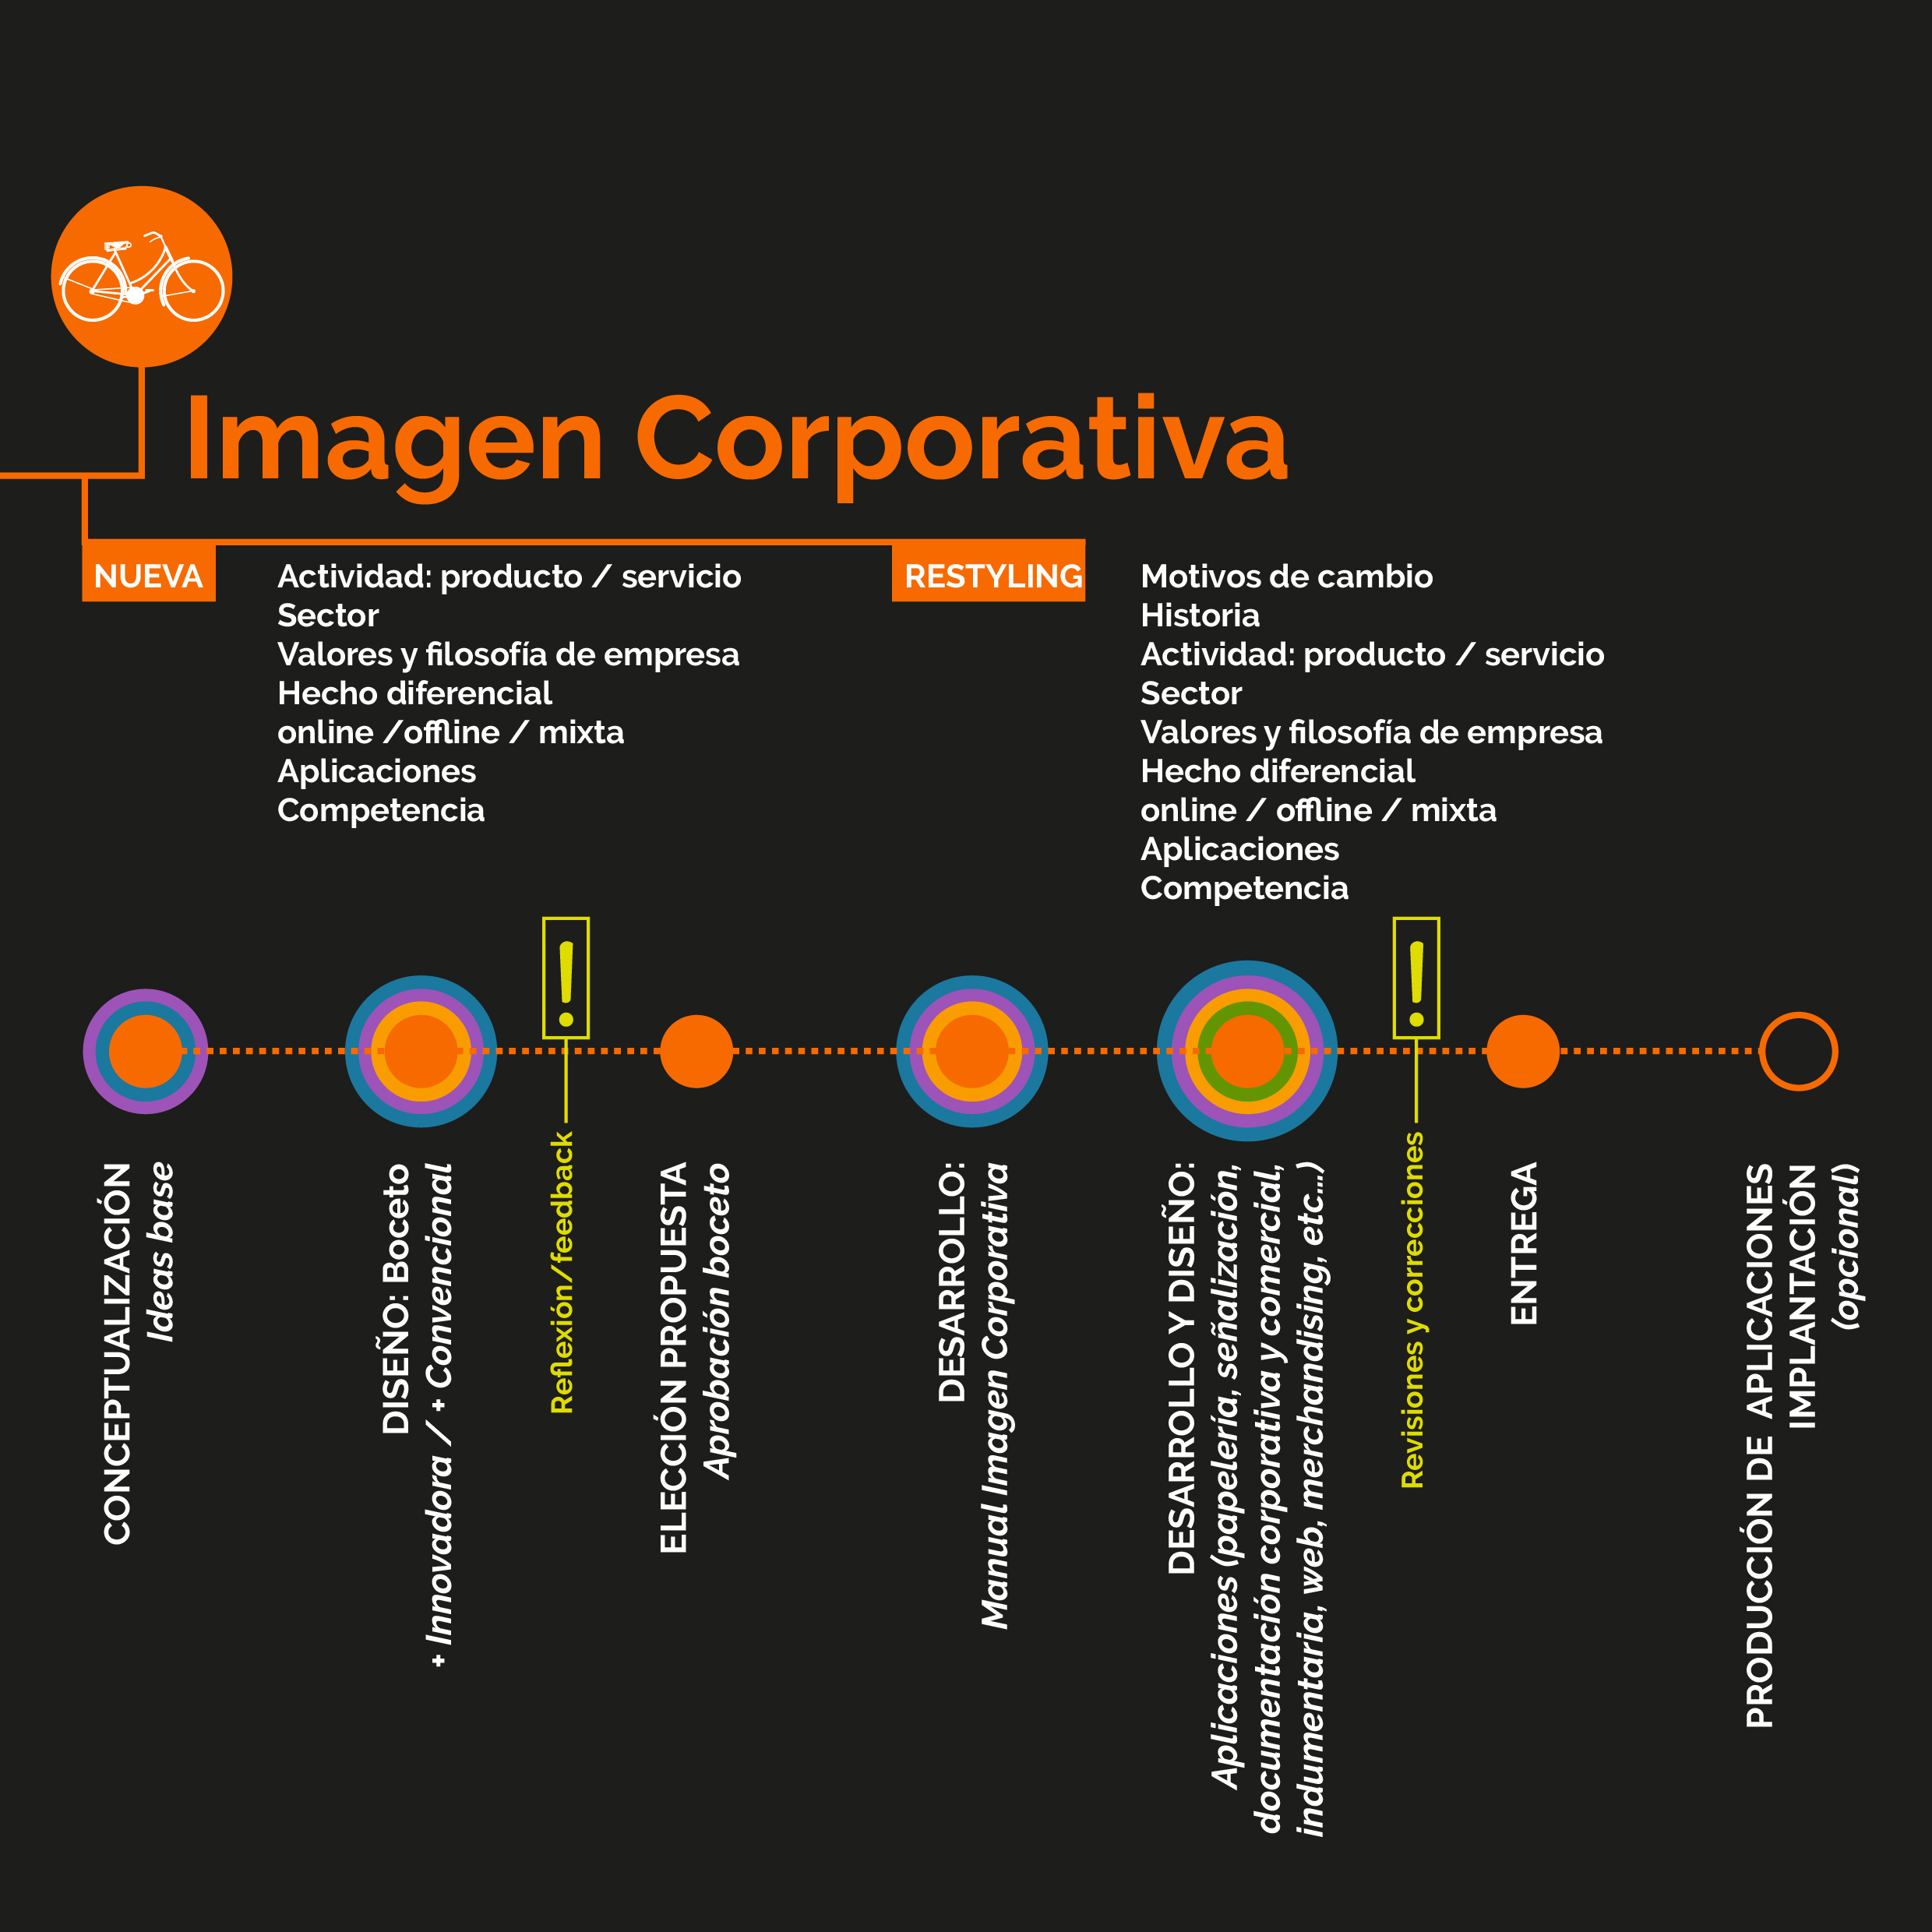 metodologia-virginia-manzano-ideas-imagen-corporativa-2